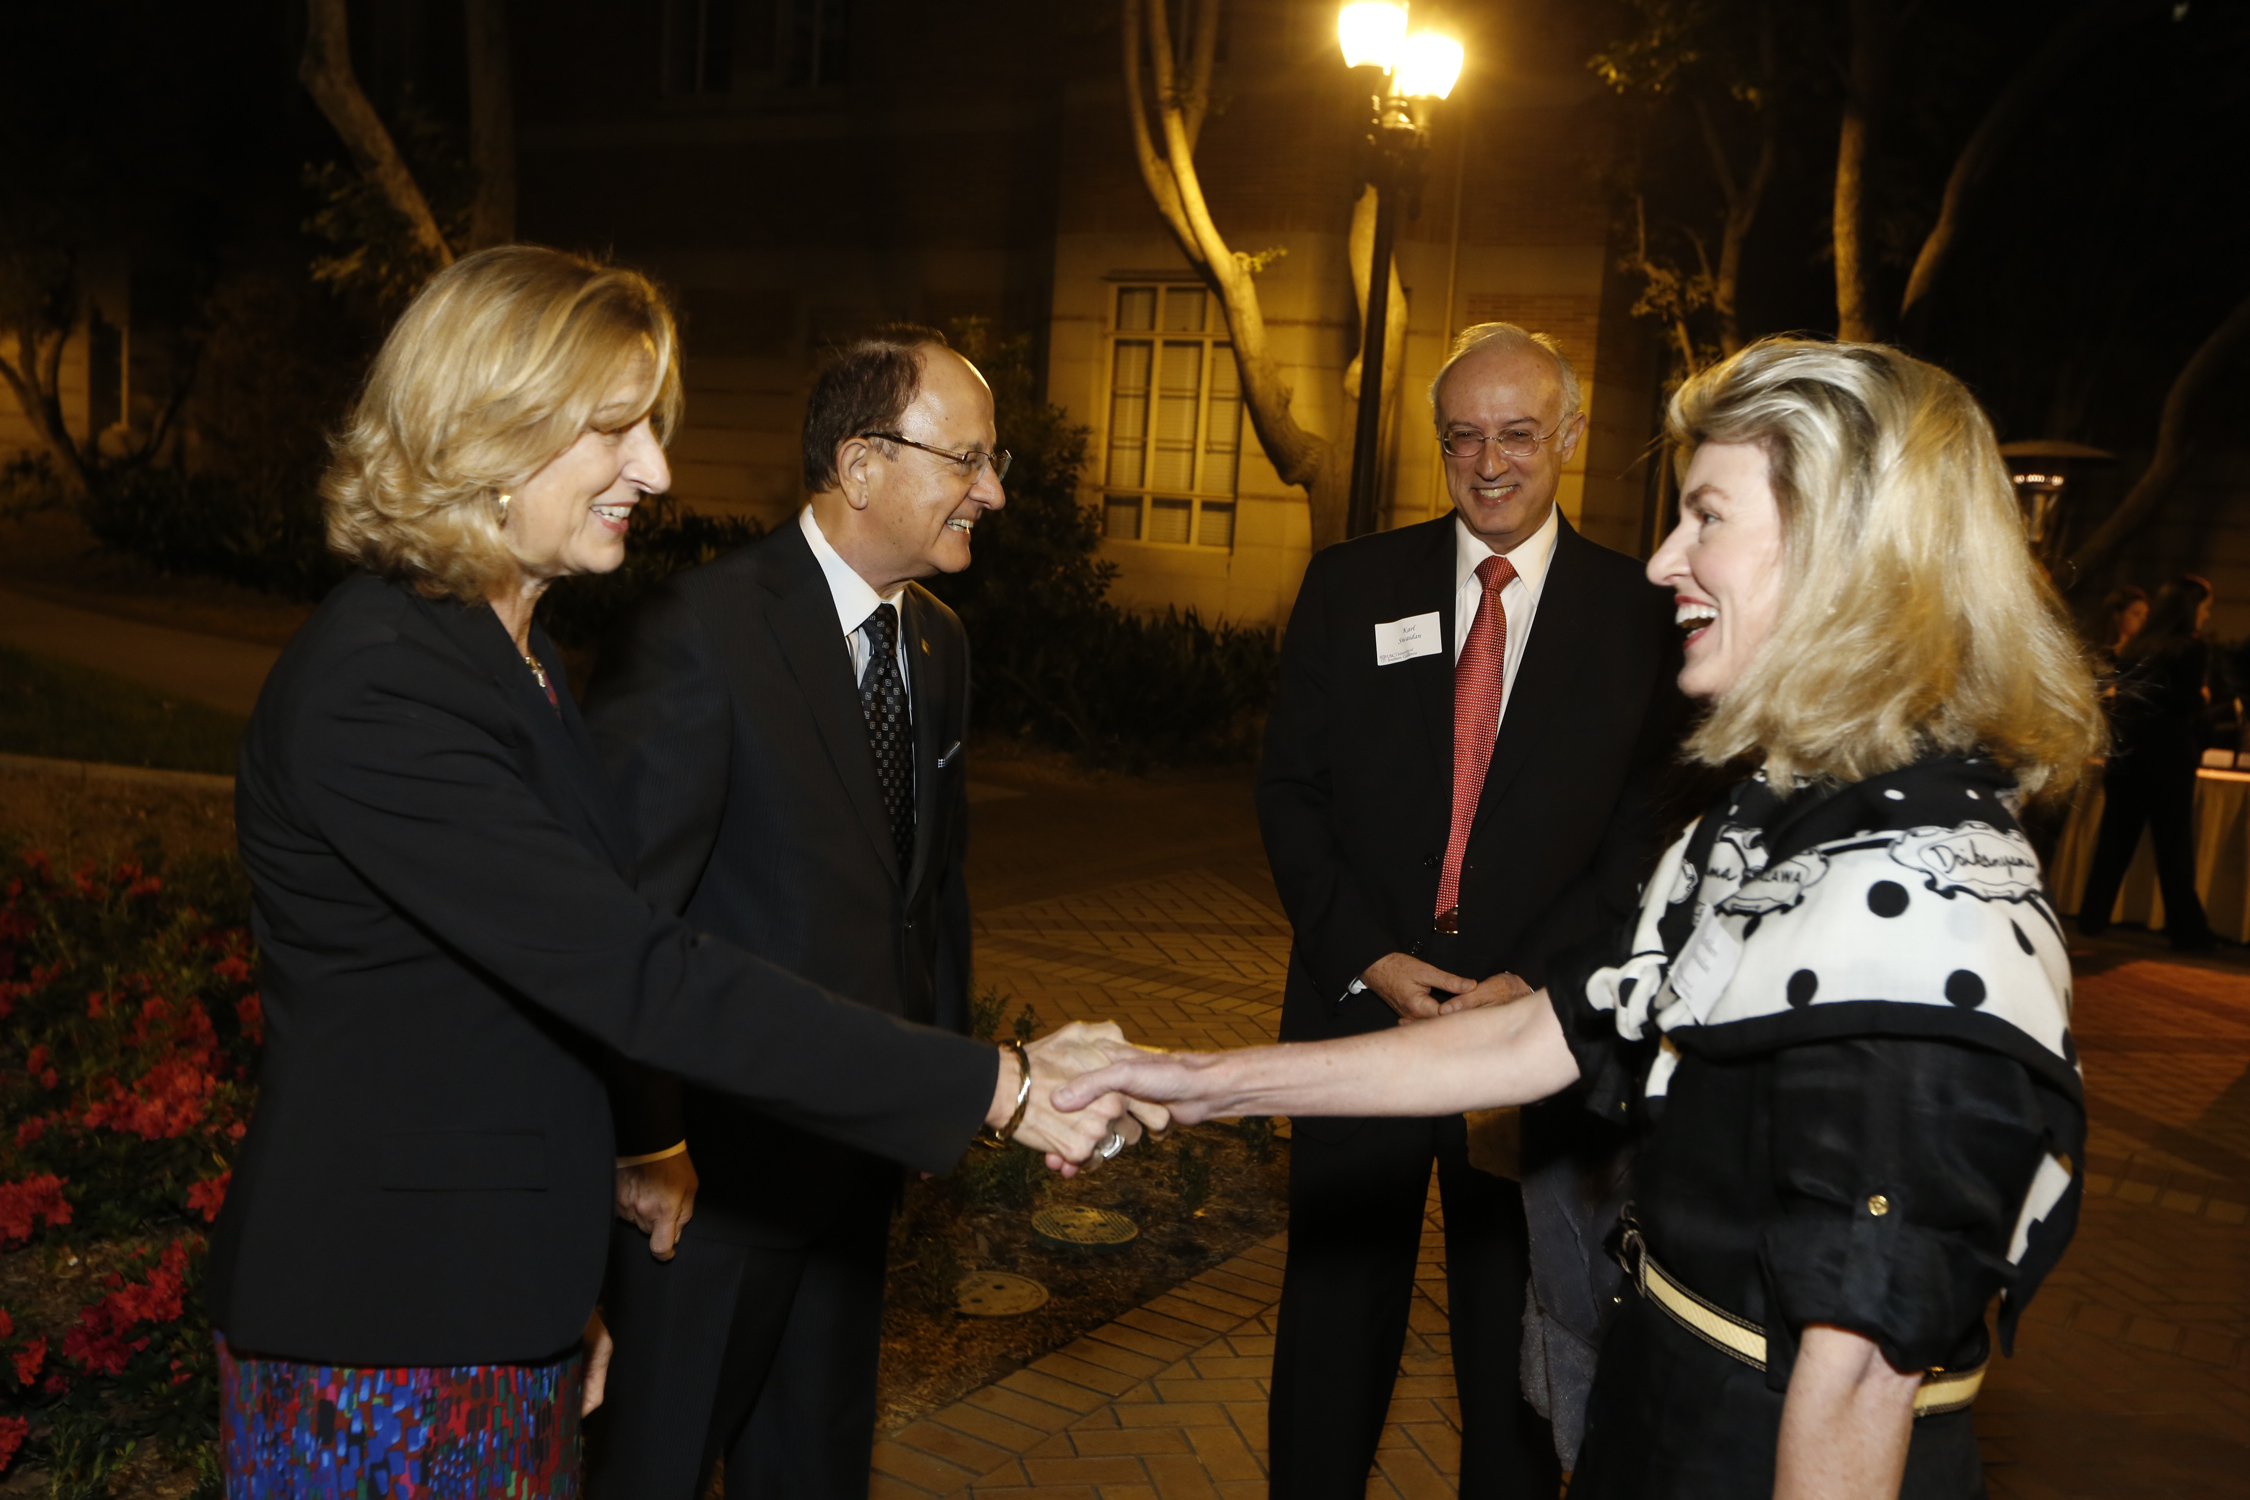 Niki C. Nikias and C. L. Max Nikais greet parents.